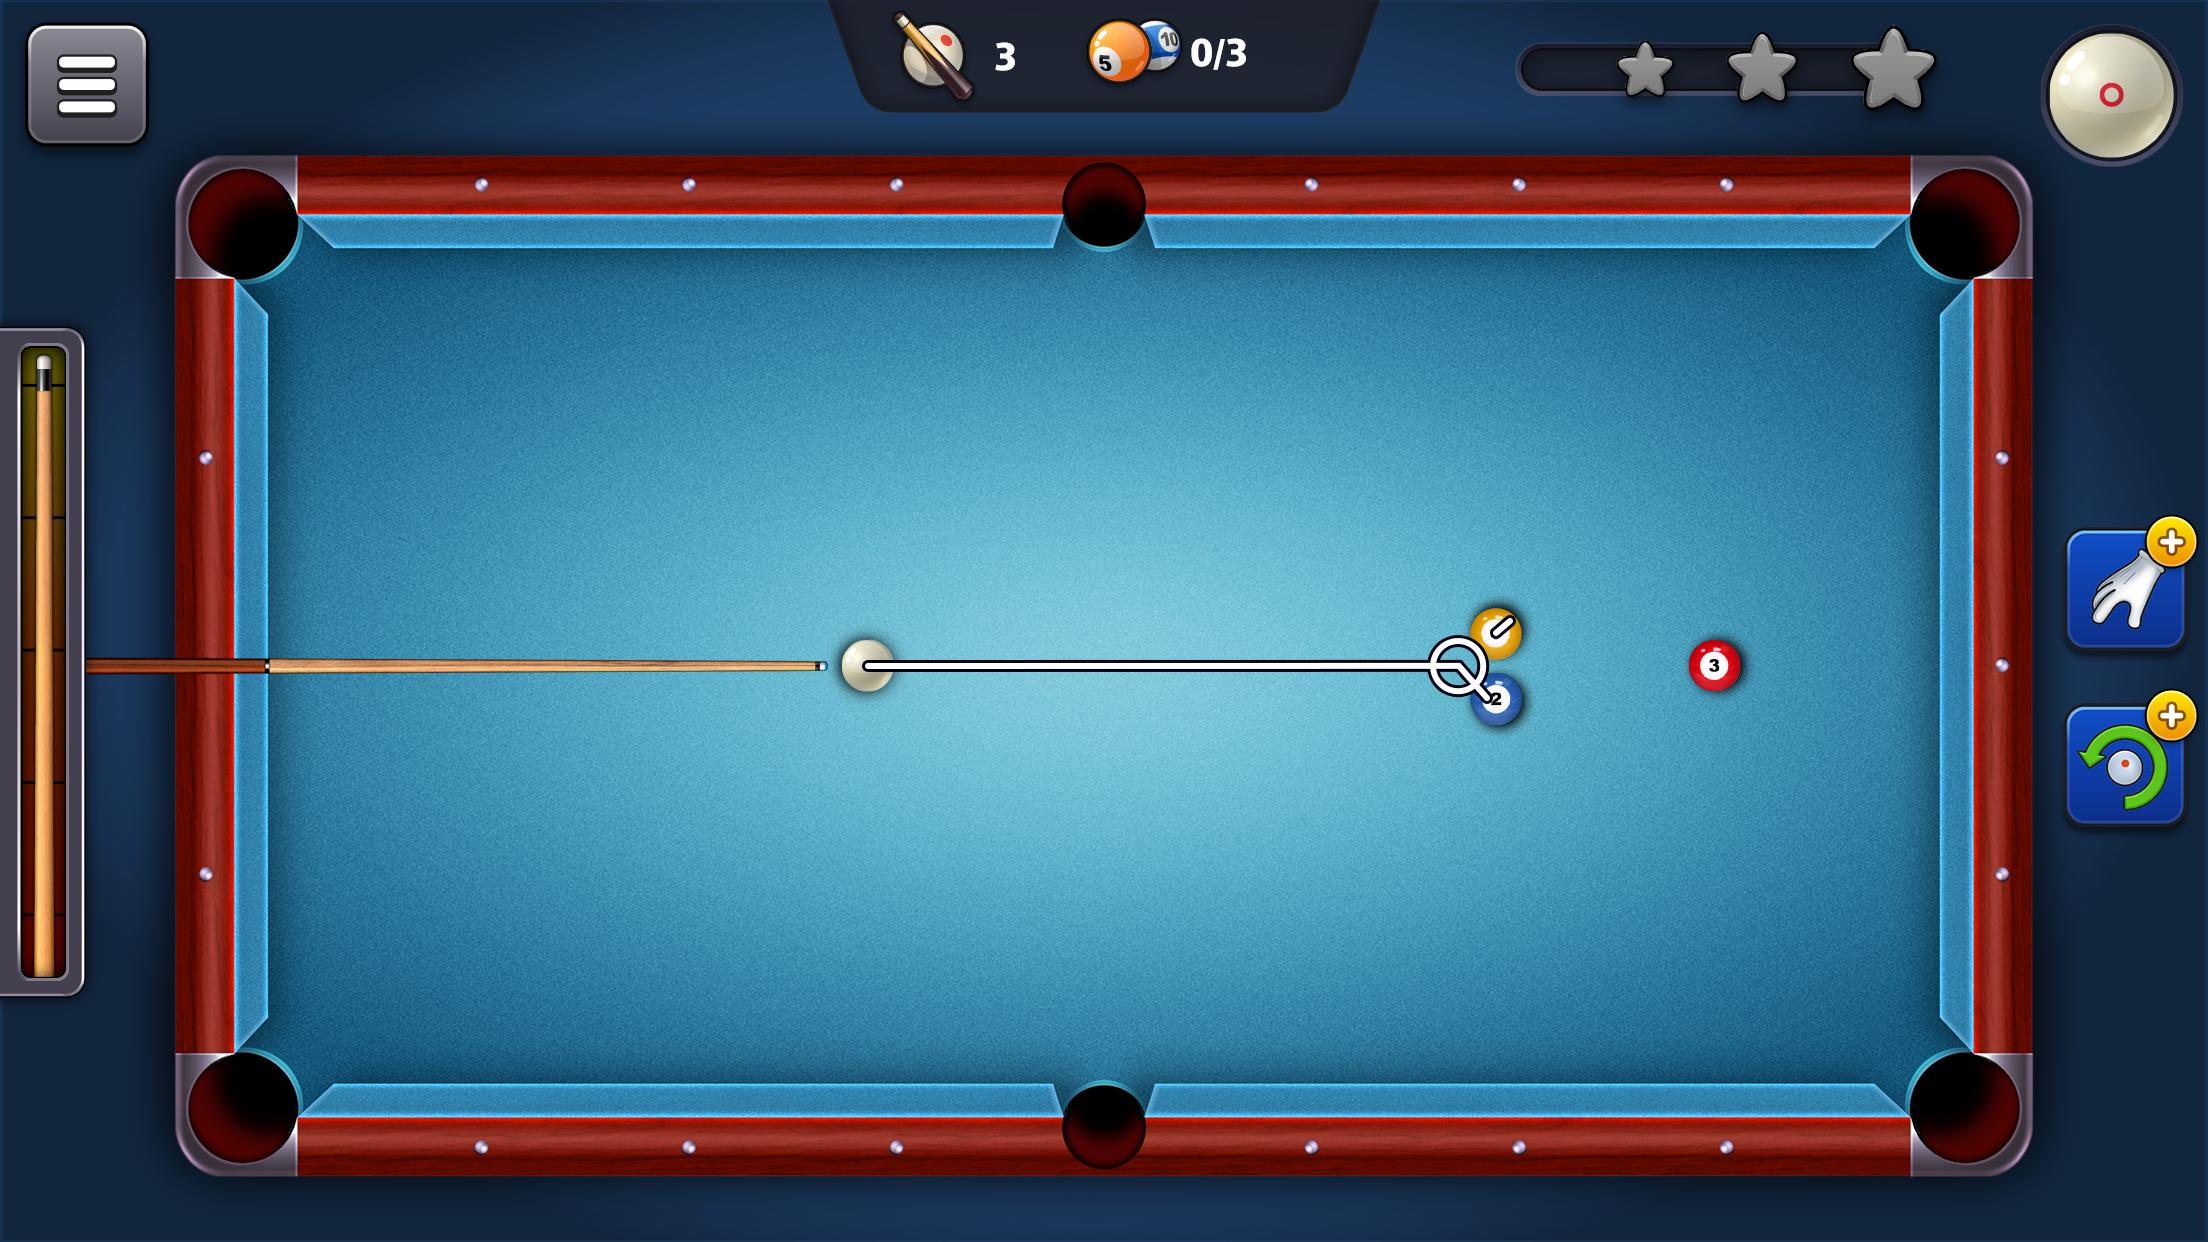 Image 8 Ball Pool (By MiniClip)